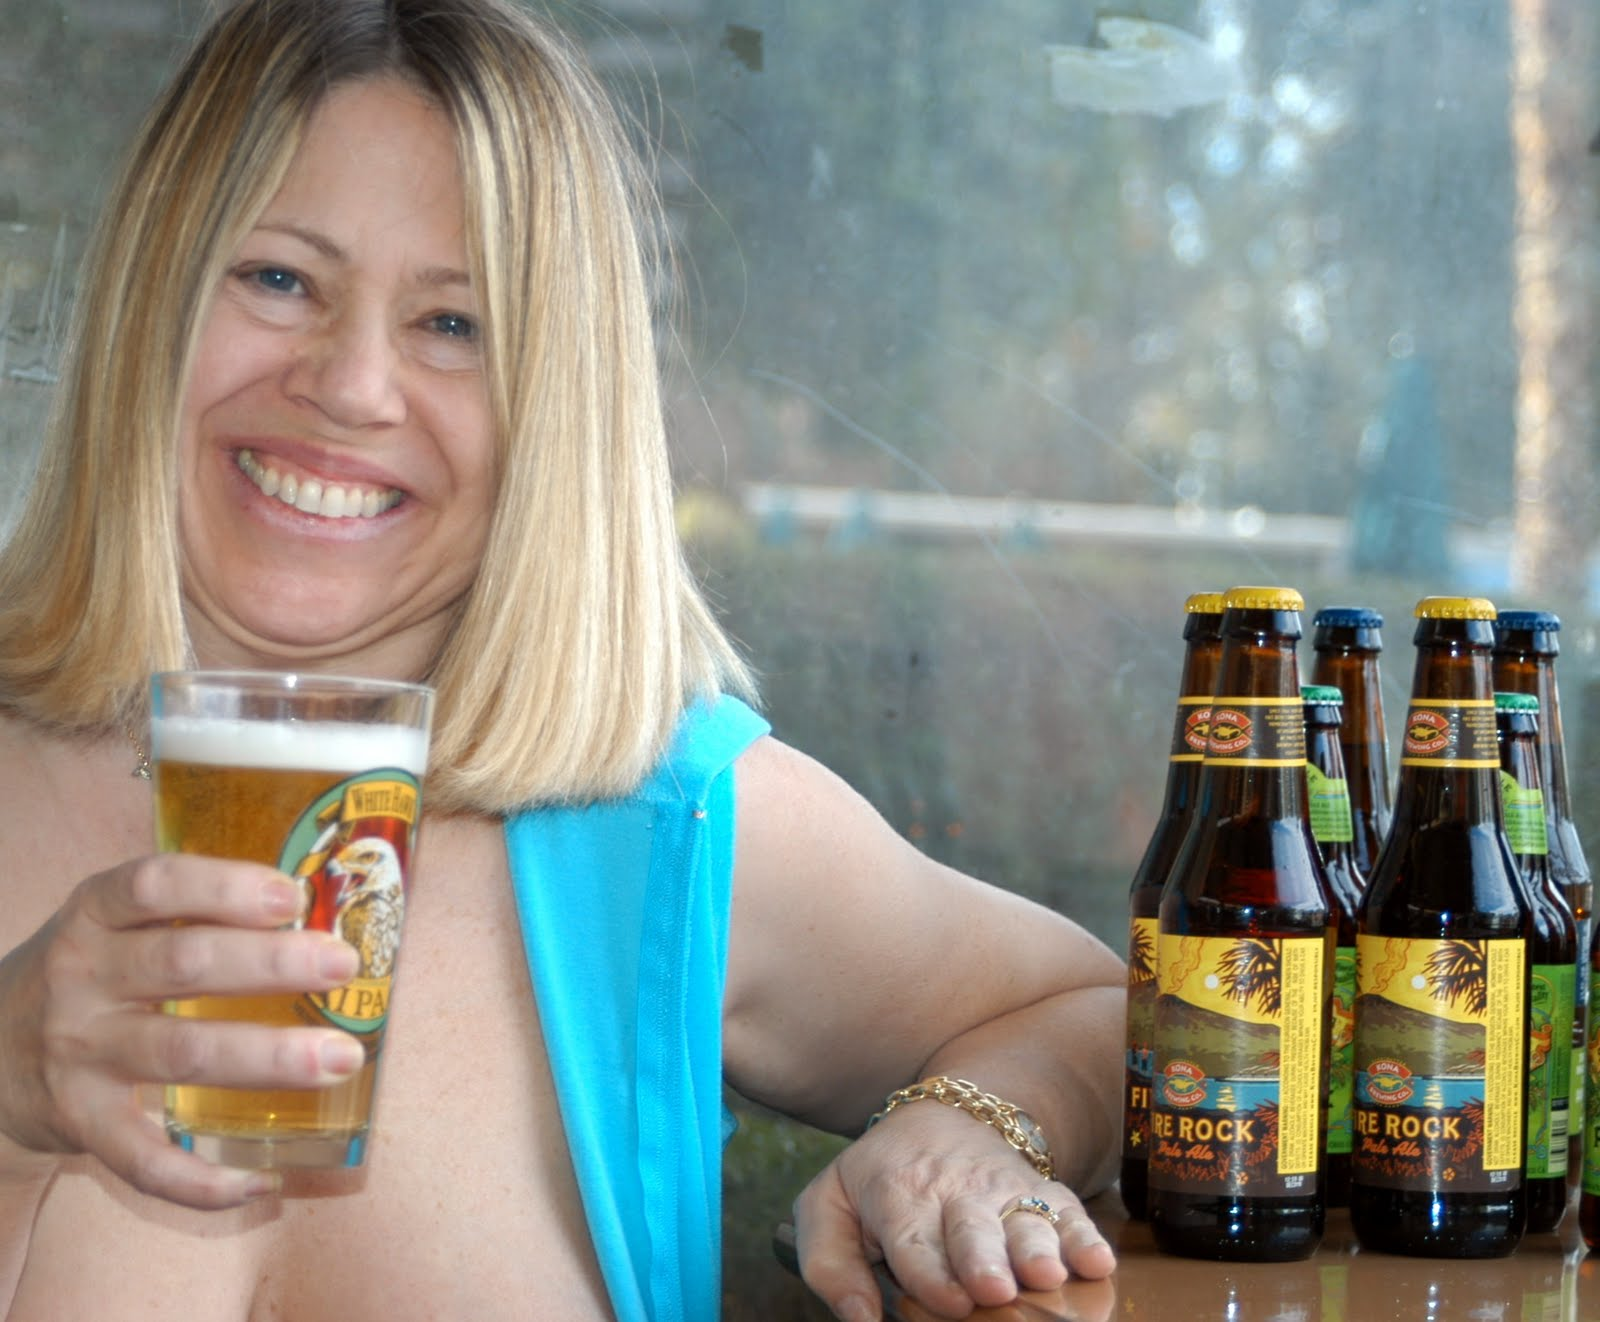 beer%2Band%2Bbday%2B032 Kelly Ripa sex pictures @ Ultra Celebs.com free celebrity naked .